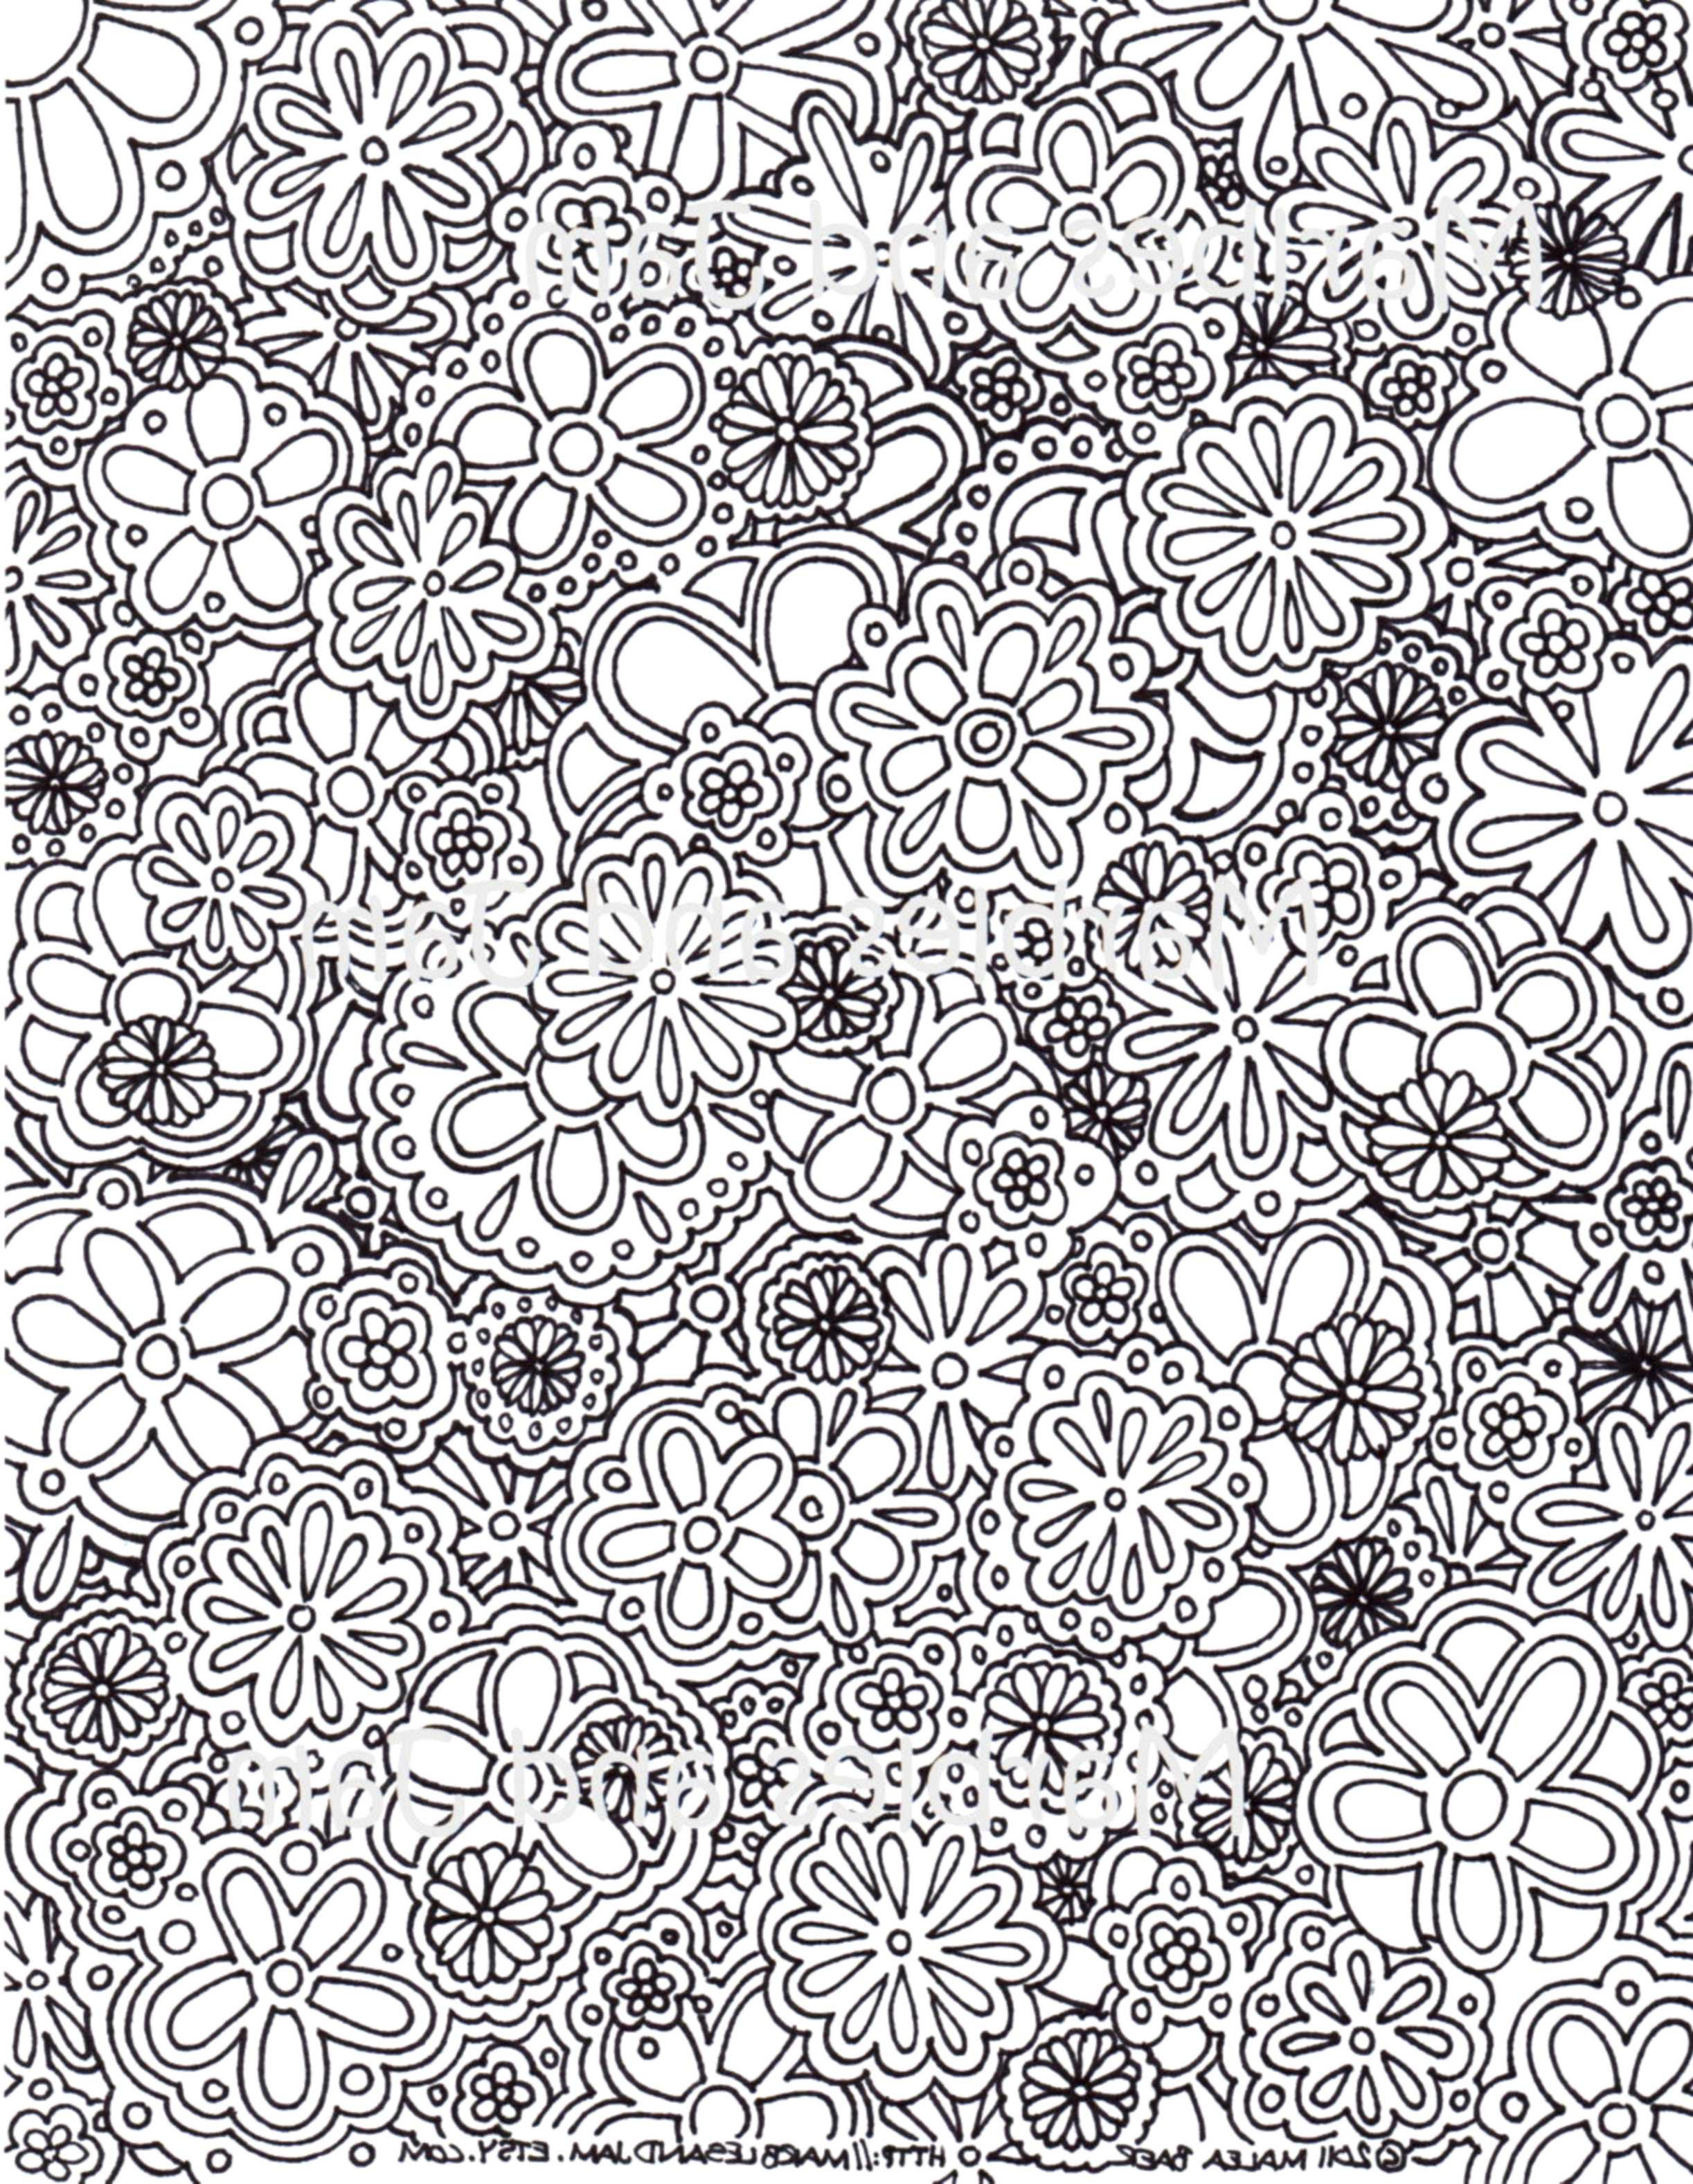 Complex Mandala Coloring Pages Printable Printable Coloring Page 25706 Bestofcoloring Com